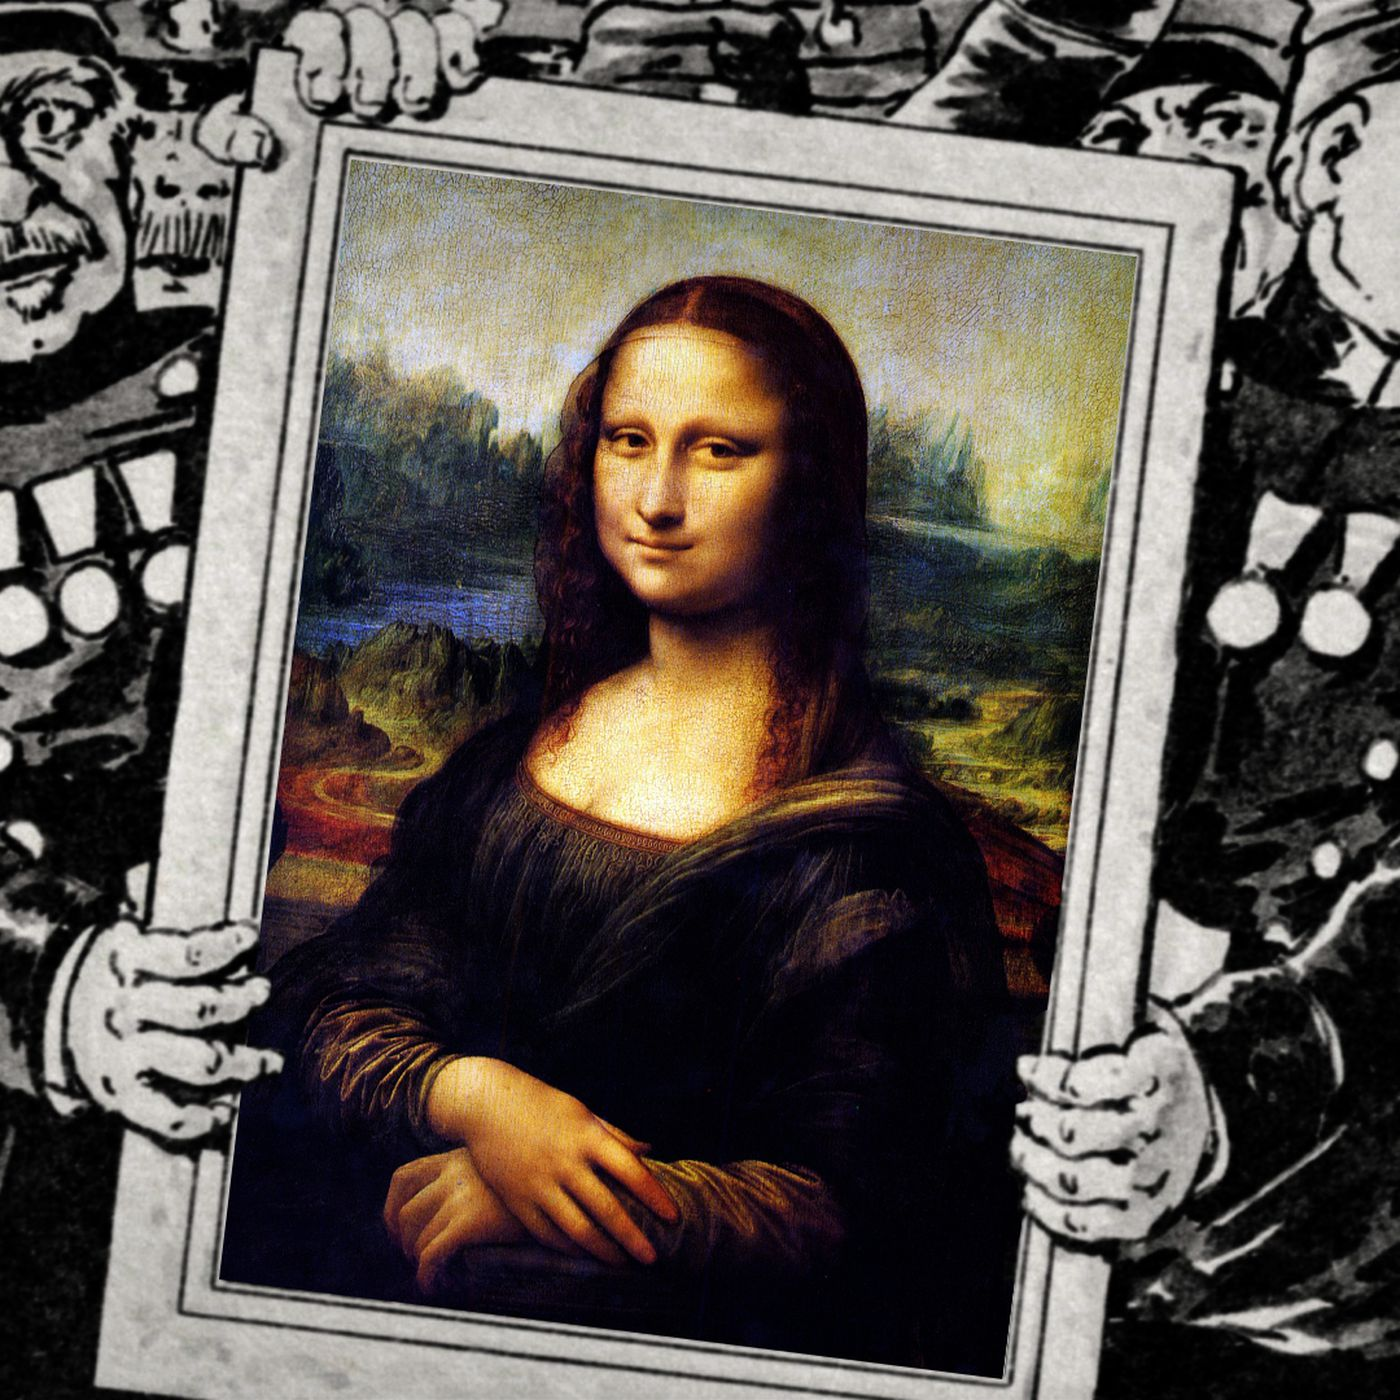 How The Mona Lisa Became So Overrated Vox